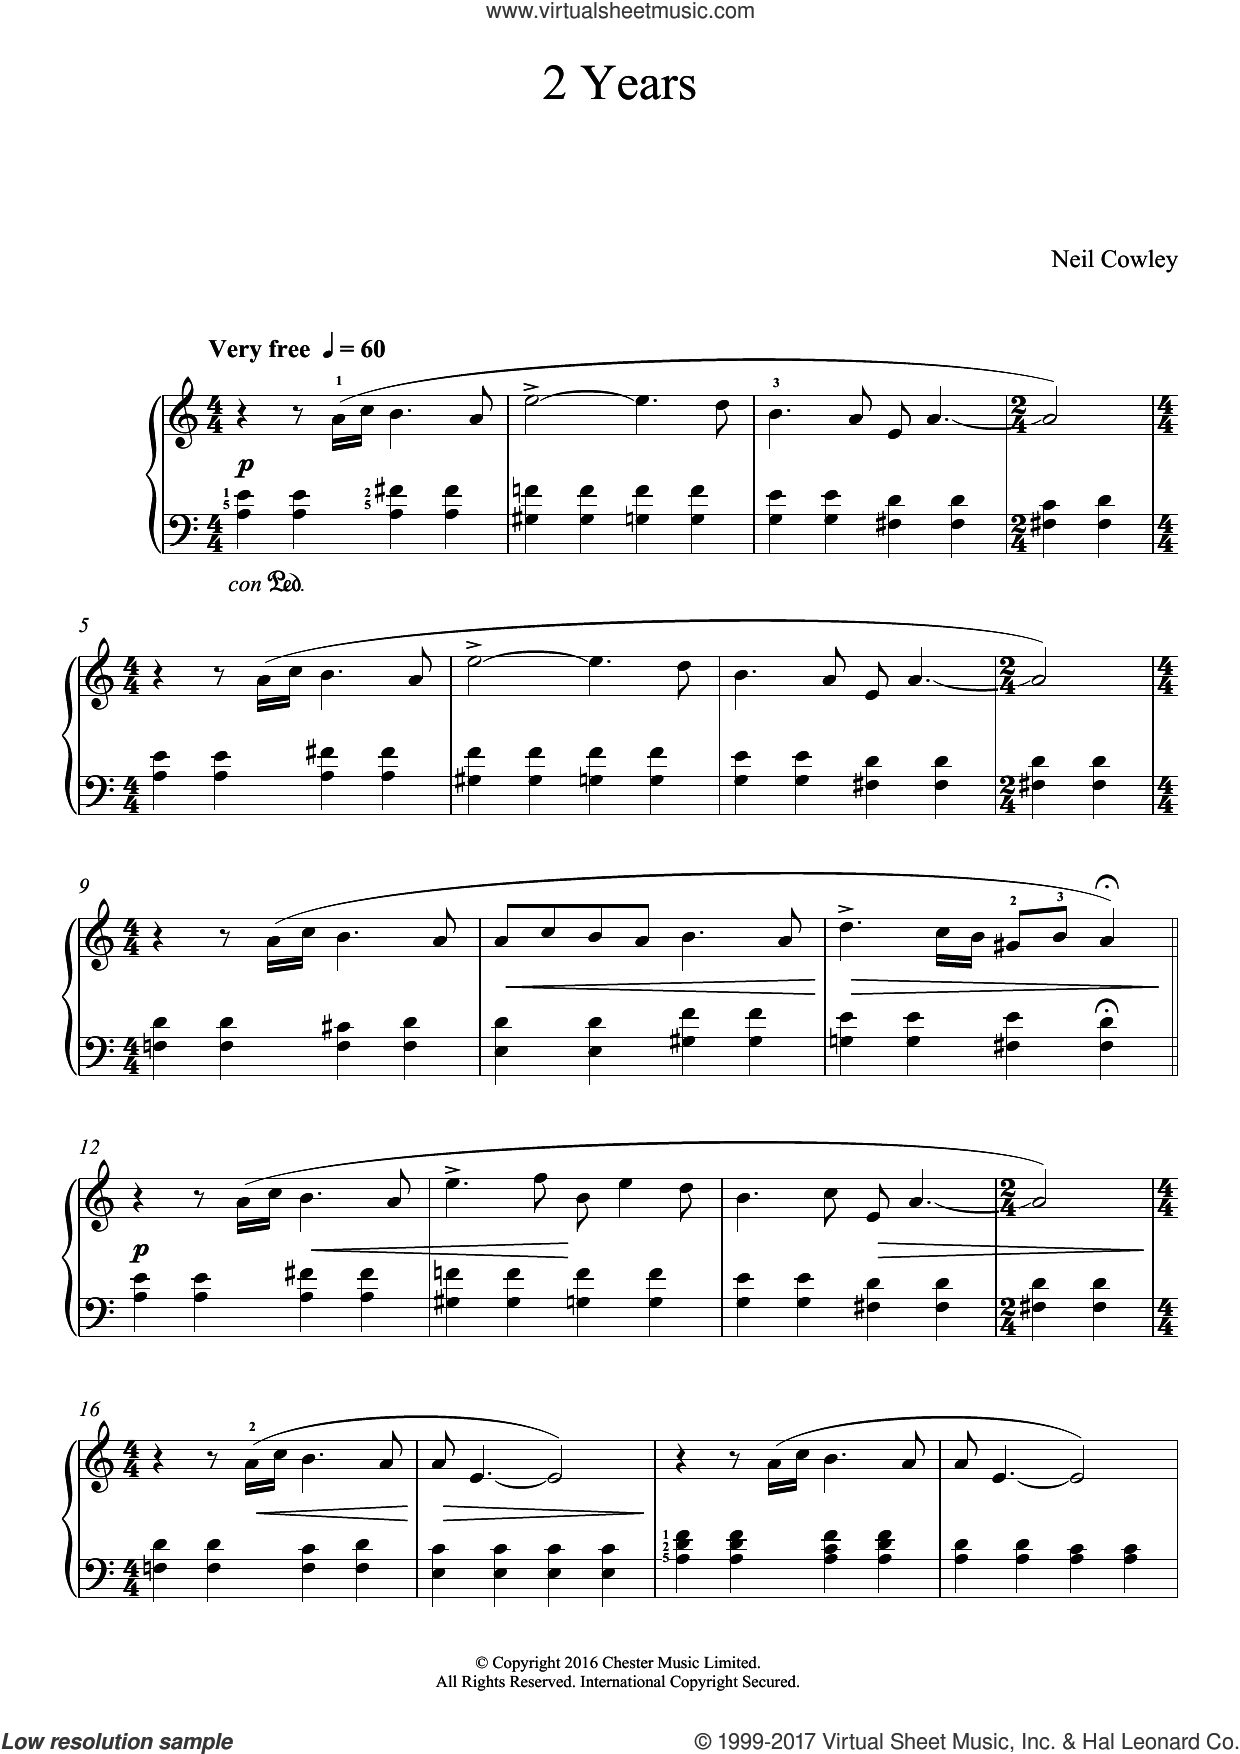 2 Years sheet music for piano solo by Neil Cowley, classical score, easy. Score Image Preview.